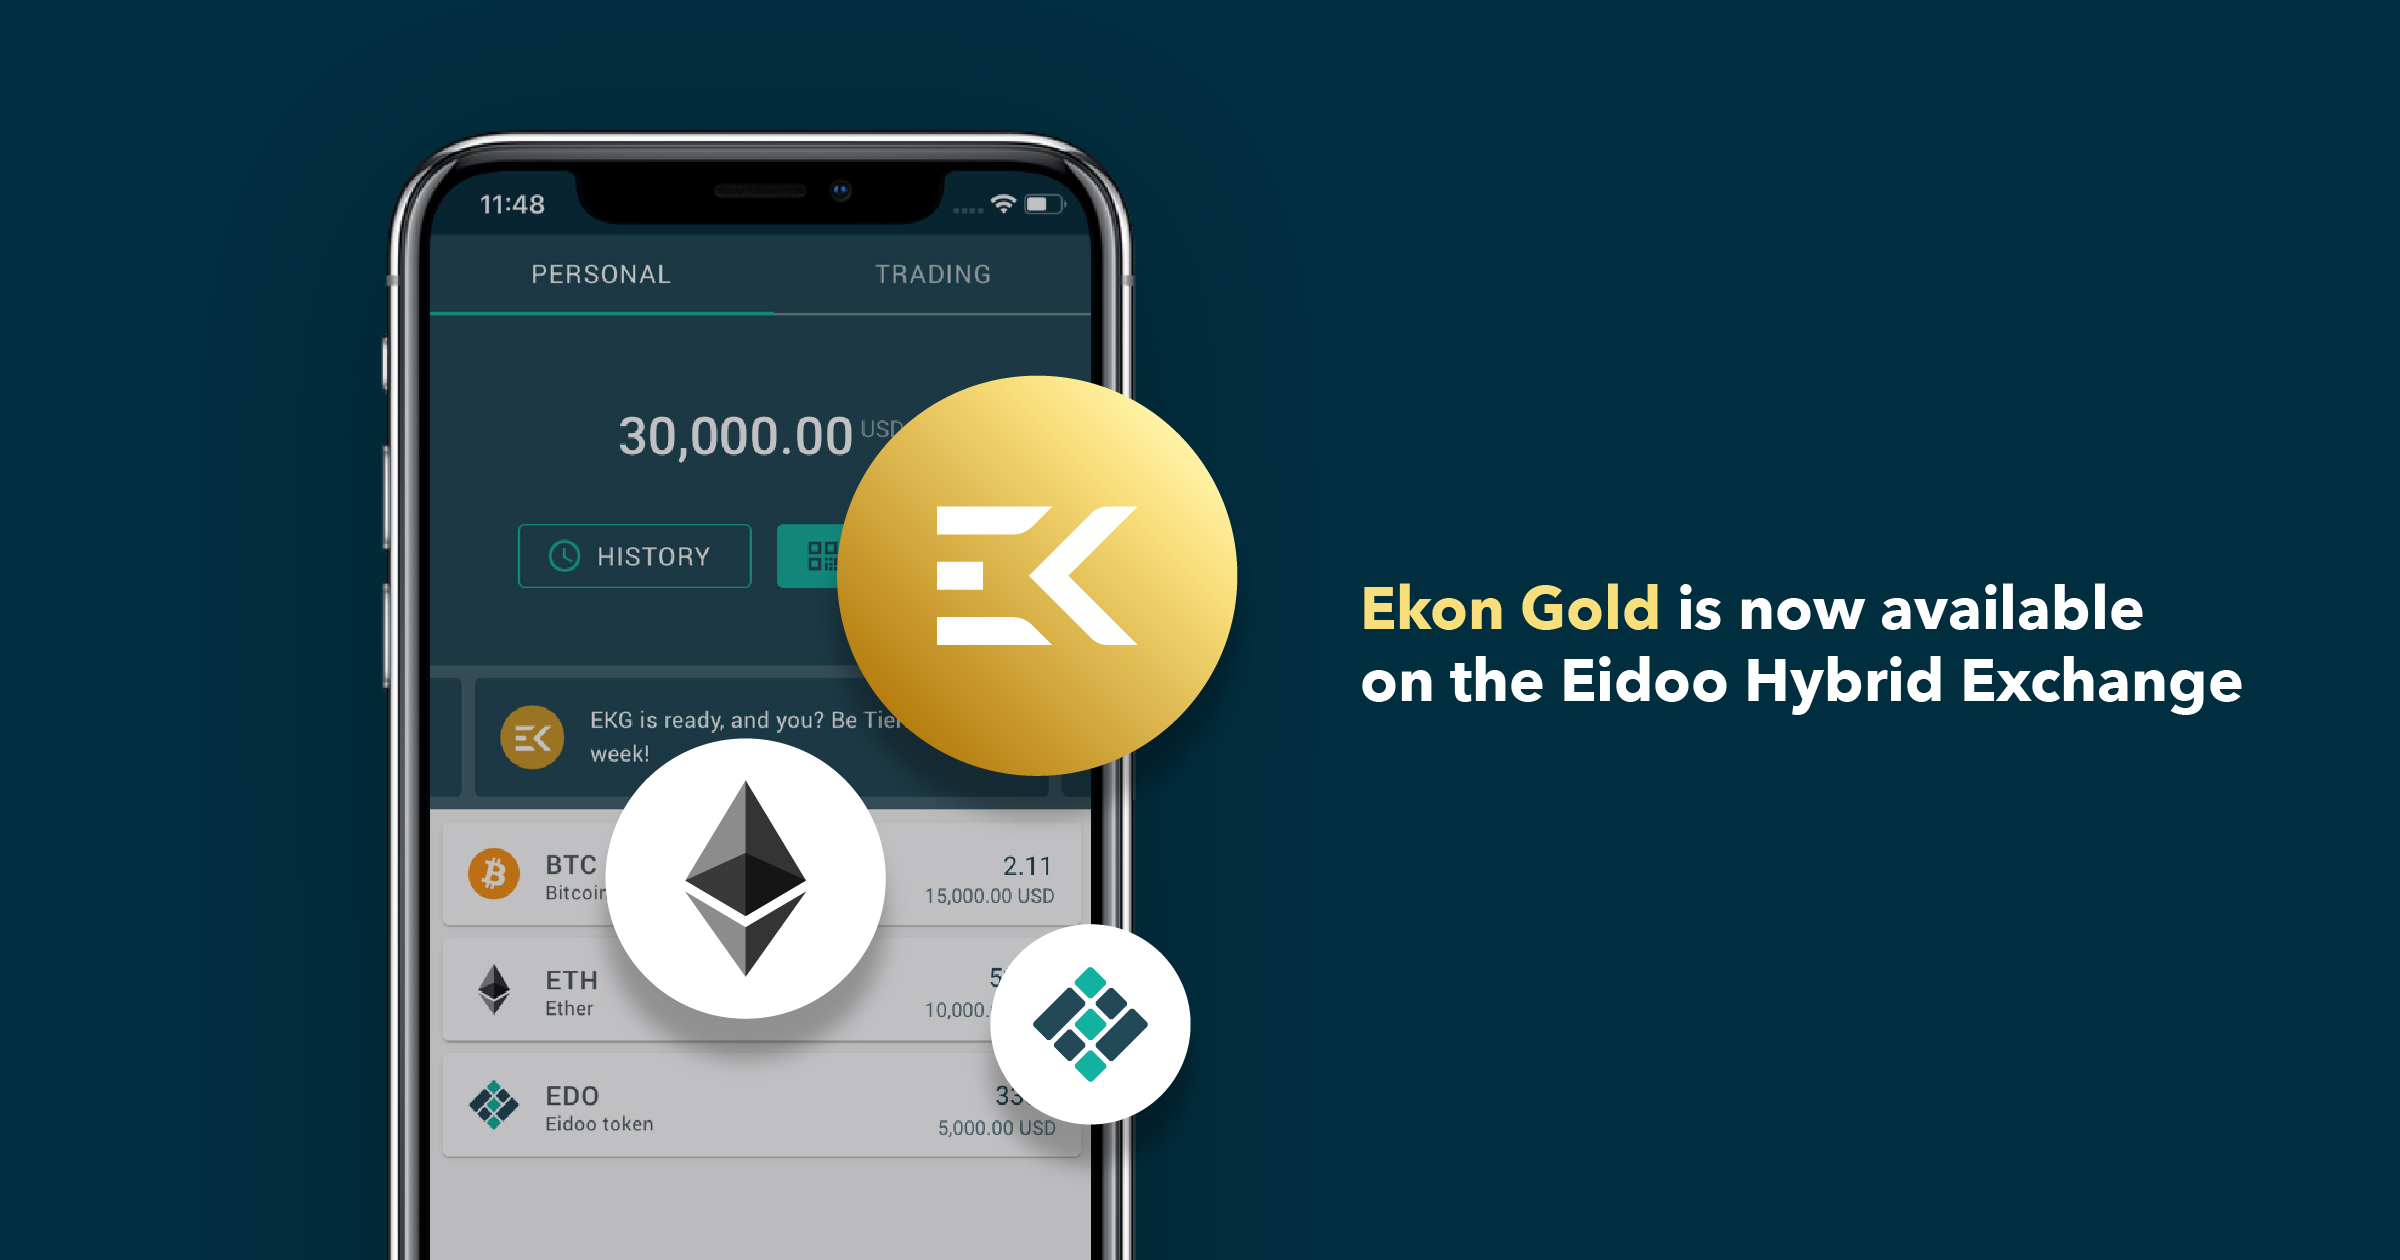 Get Ekon Gold now on the Eidoo Hybrid Exchange